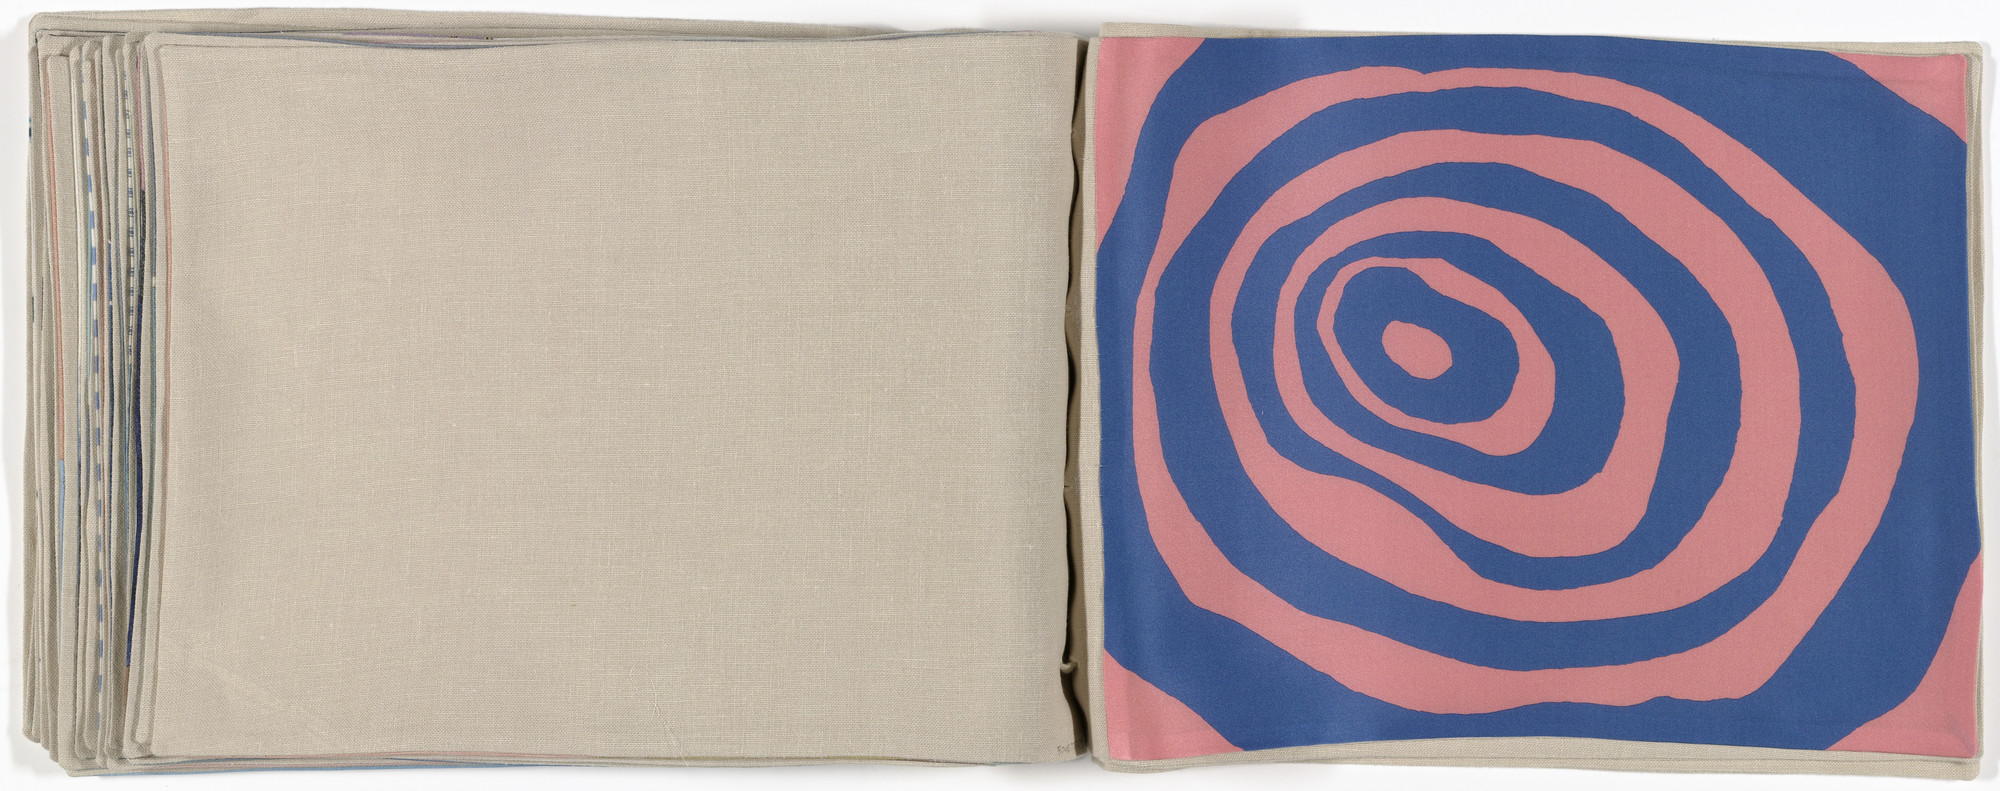 Louise Bourgeois. Untitled, no. 22 of 23, from the illustrated book, Ode à la Bièvre. 2007